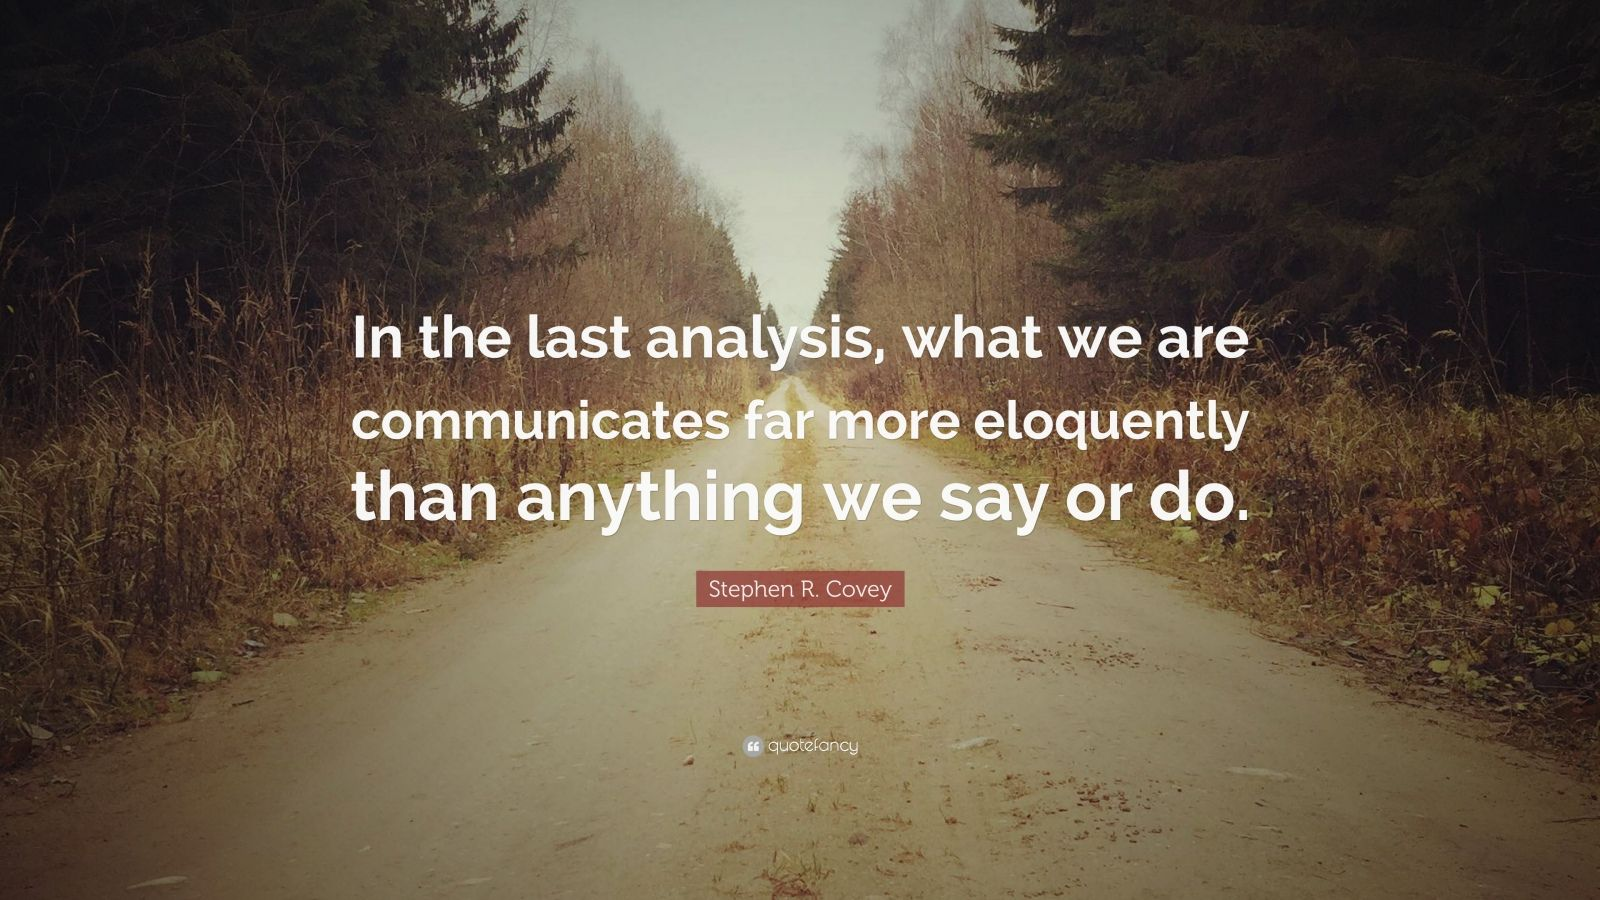 """Stephen R. Covey Quote: """"In the last analysis, what we are communicates far more eloquently than anything we say or do."""""""